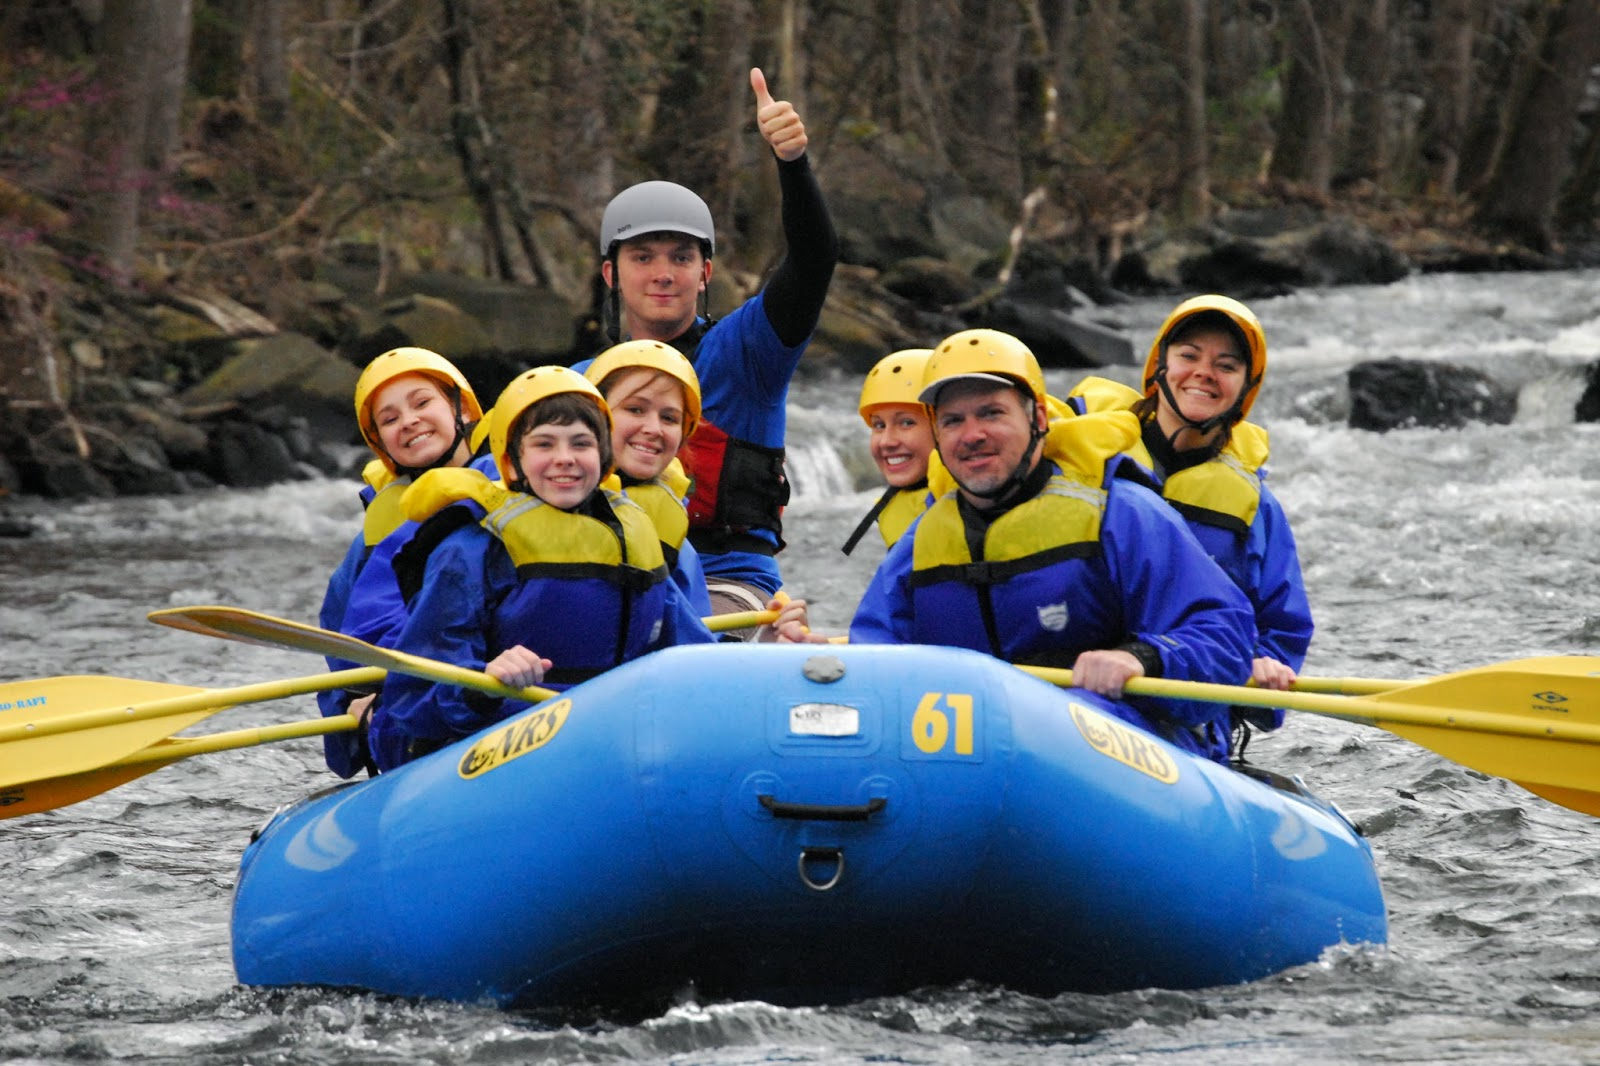 Family rafting fun on the Lower Pigeon River